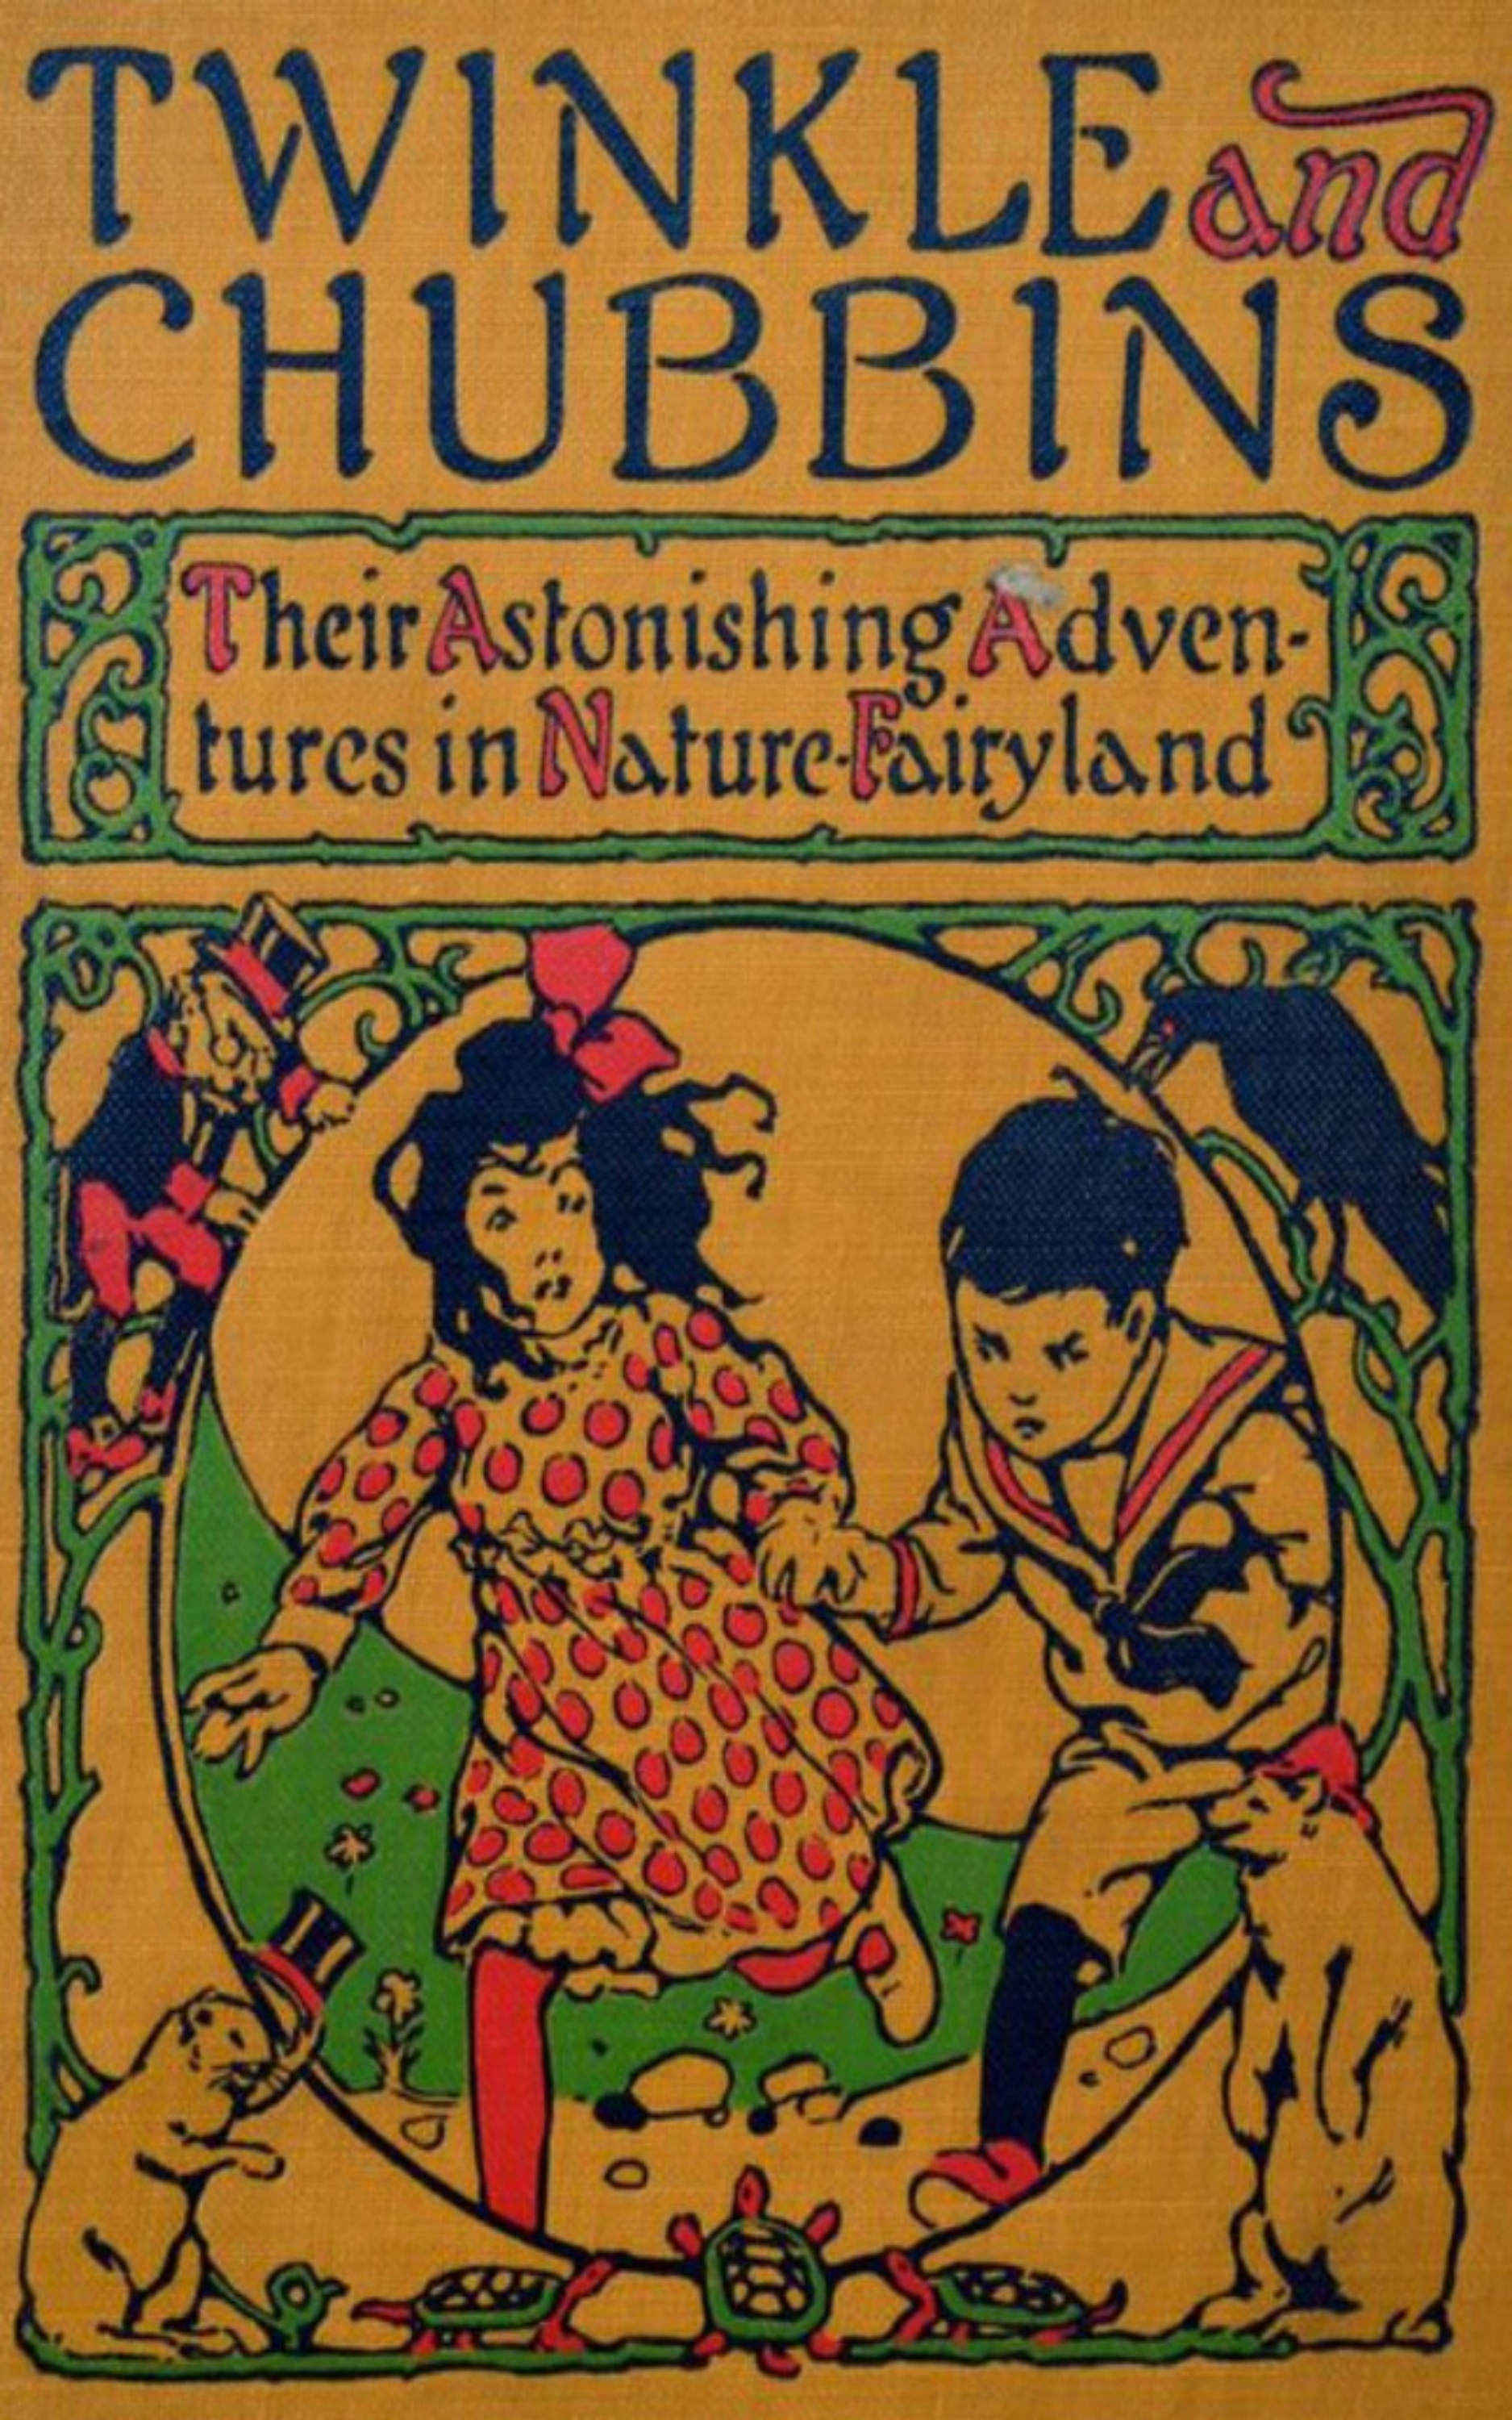 twinkle and chubbins their astonishing adventures in nature fairyland